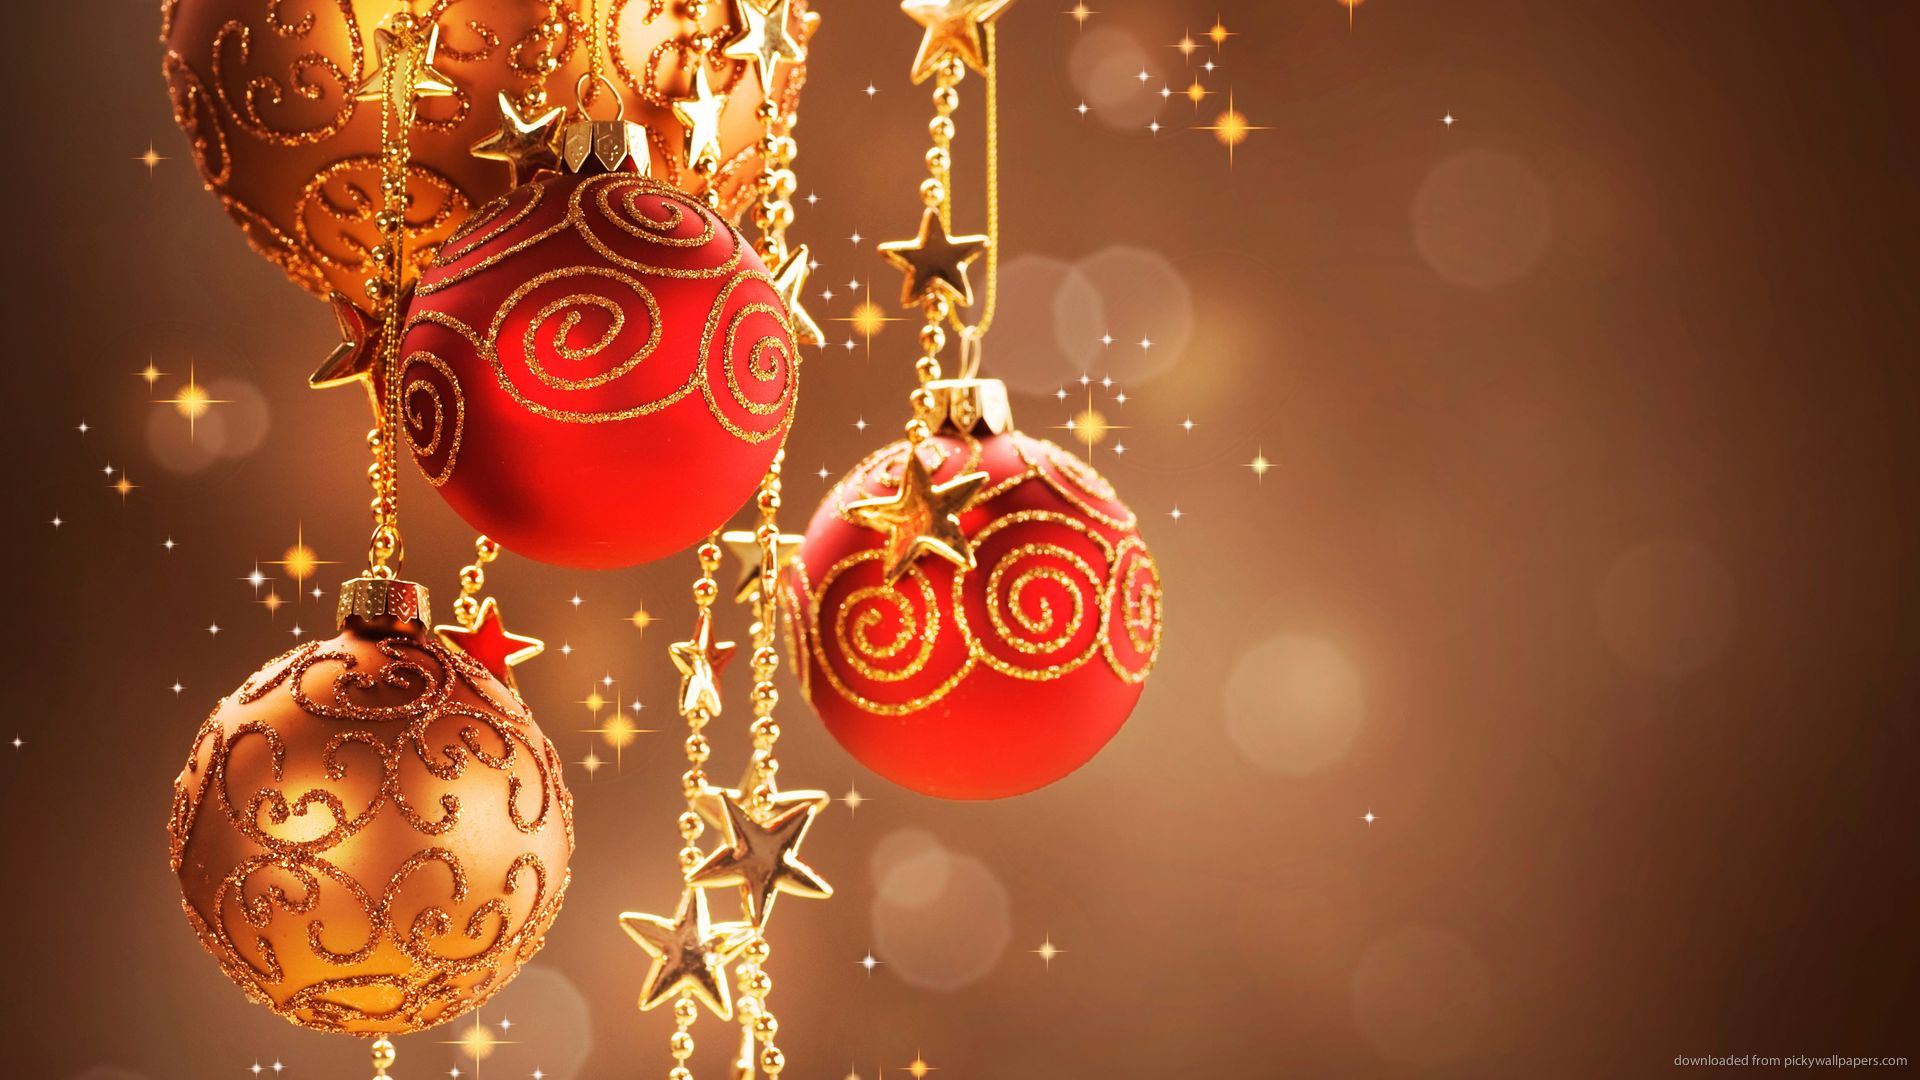 [42+] HD Christmas Wallpaper 1920x1080 On WallpaperSafari